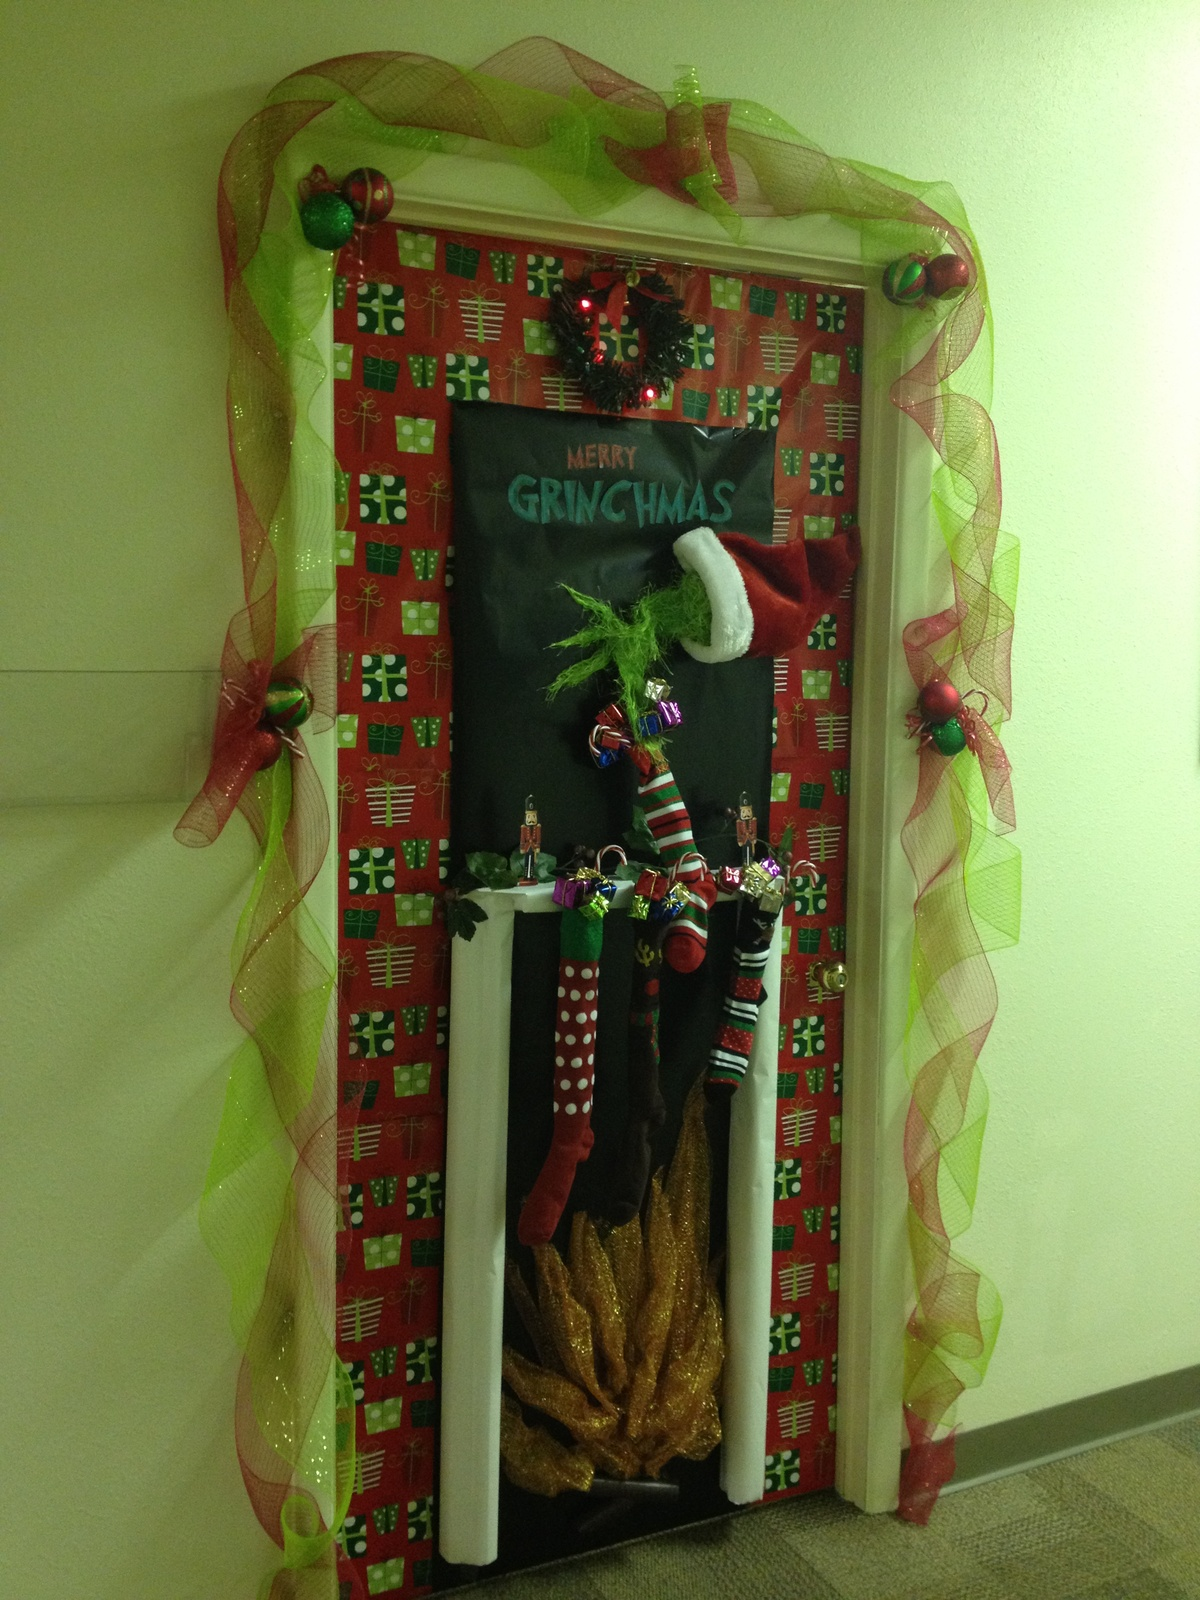 1000+ images about door decor on Pinterest | Grinch, Dogs ...